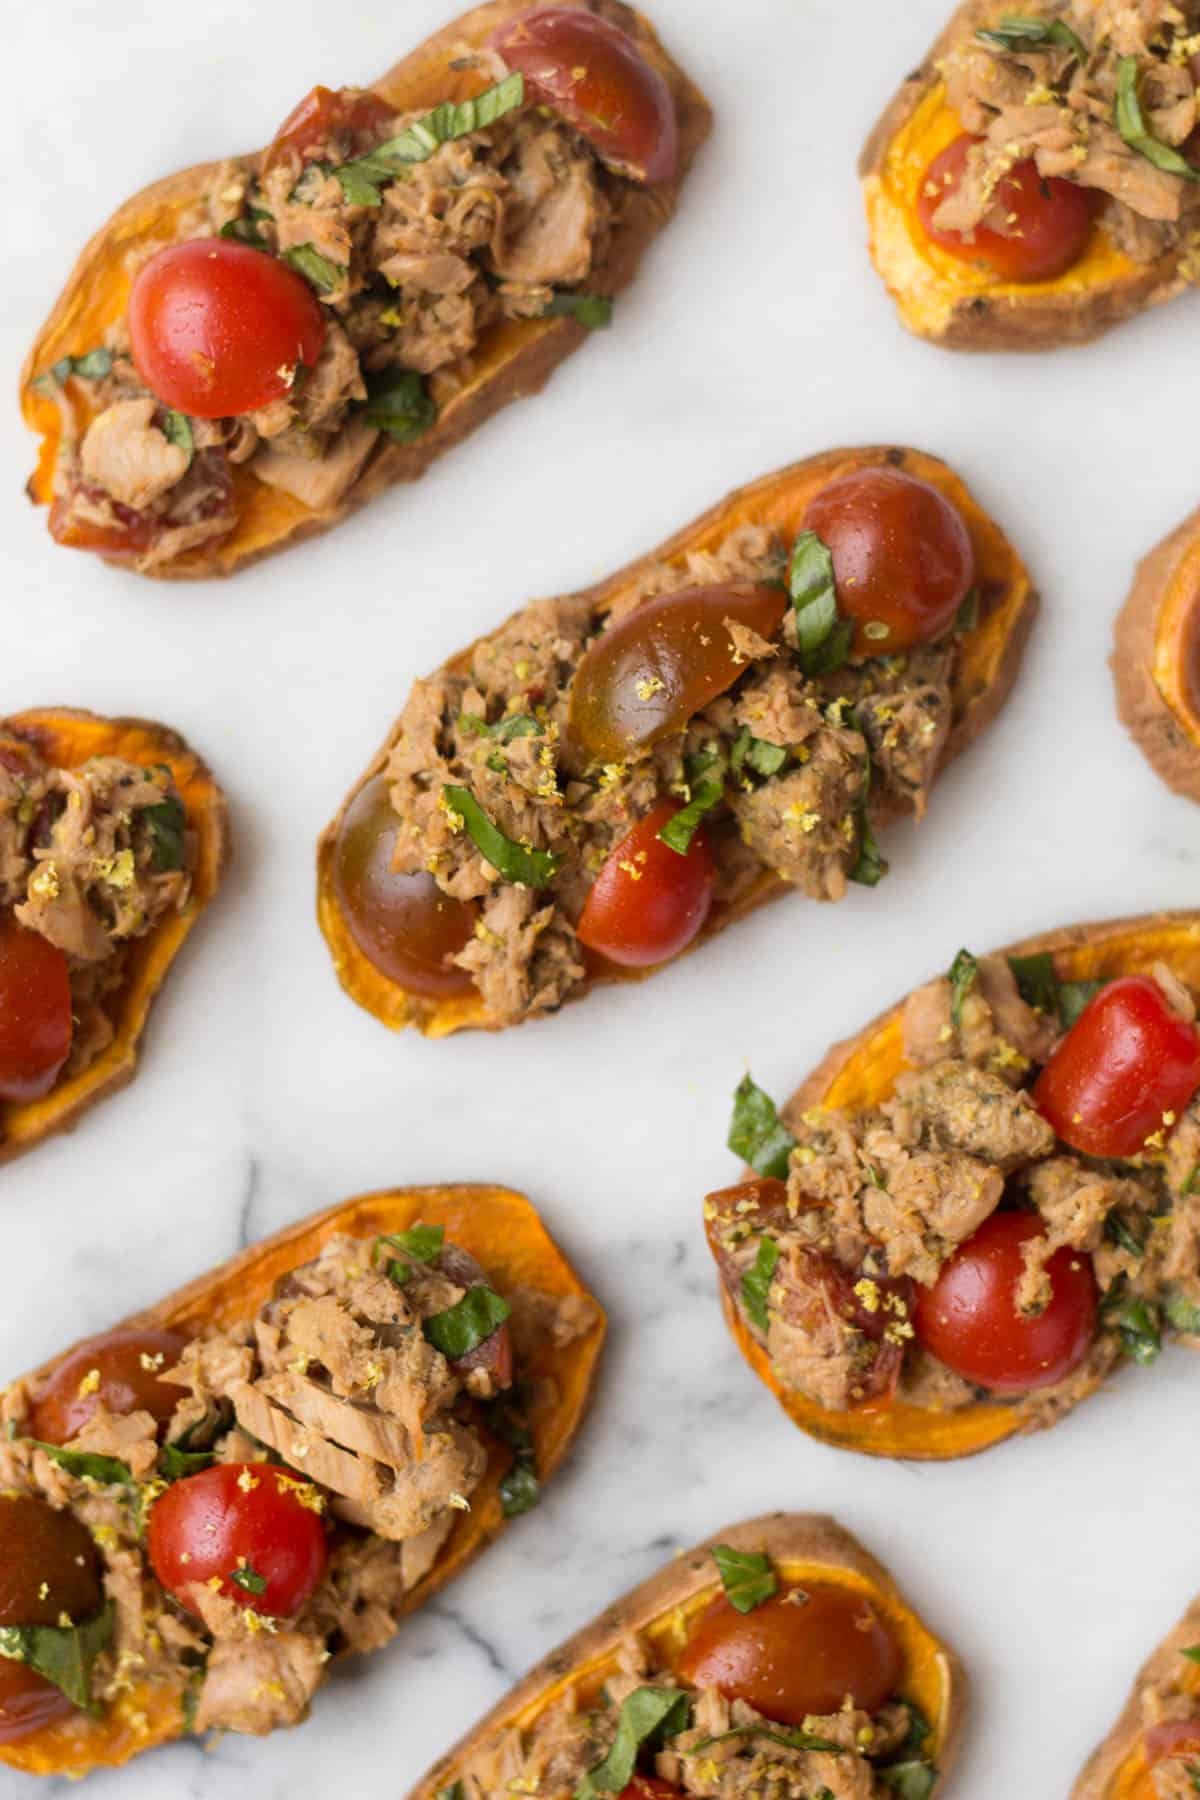 A paleo and Whole30 approved protein packed, this Tuna Bruschetta on Sweet Potato Toast makes easy, healthy, and crowd pleasing appetizer or snack! - Eat the Gains